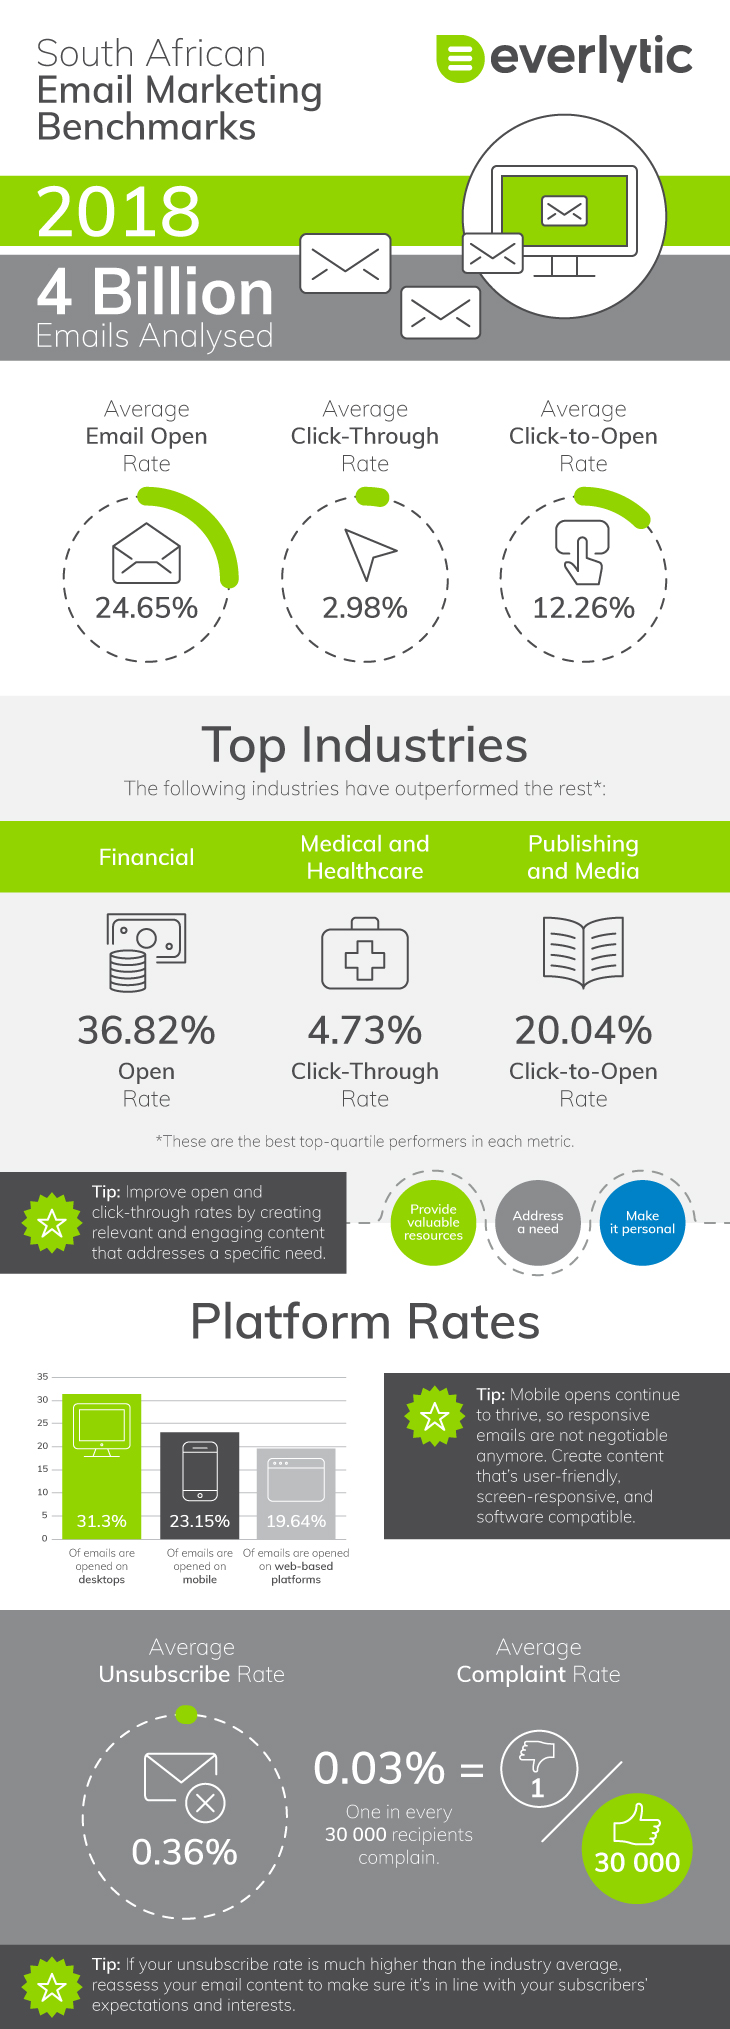 Everlytic | Benchmarks 2018 | Infographic | Email Marketing | Statistics | Click rate | Click-through rate | Click-to-Open rate | Unsubscribe rate | South Africa